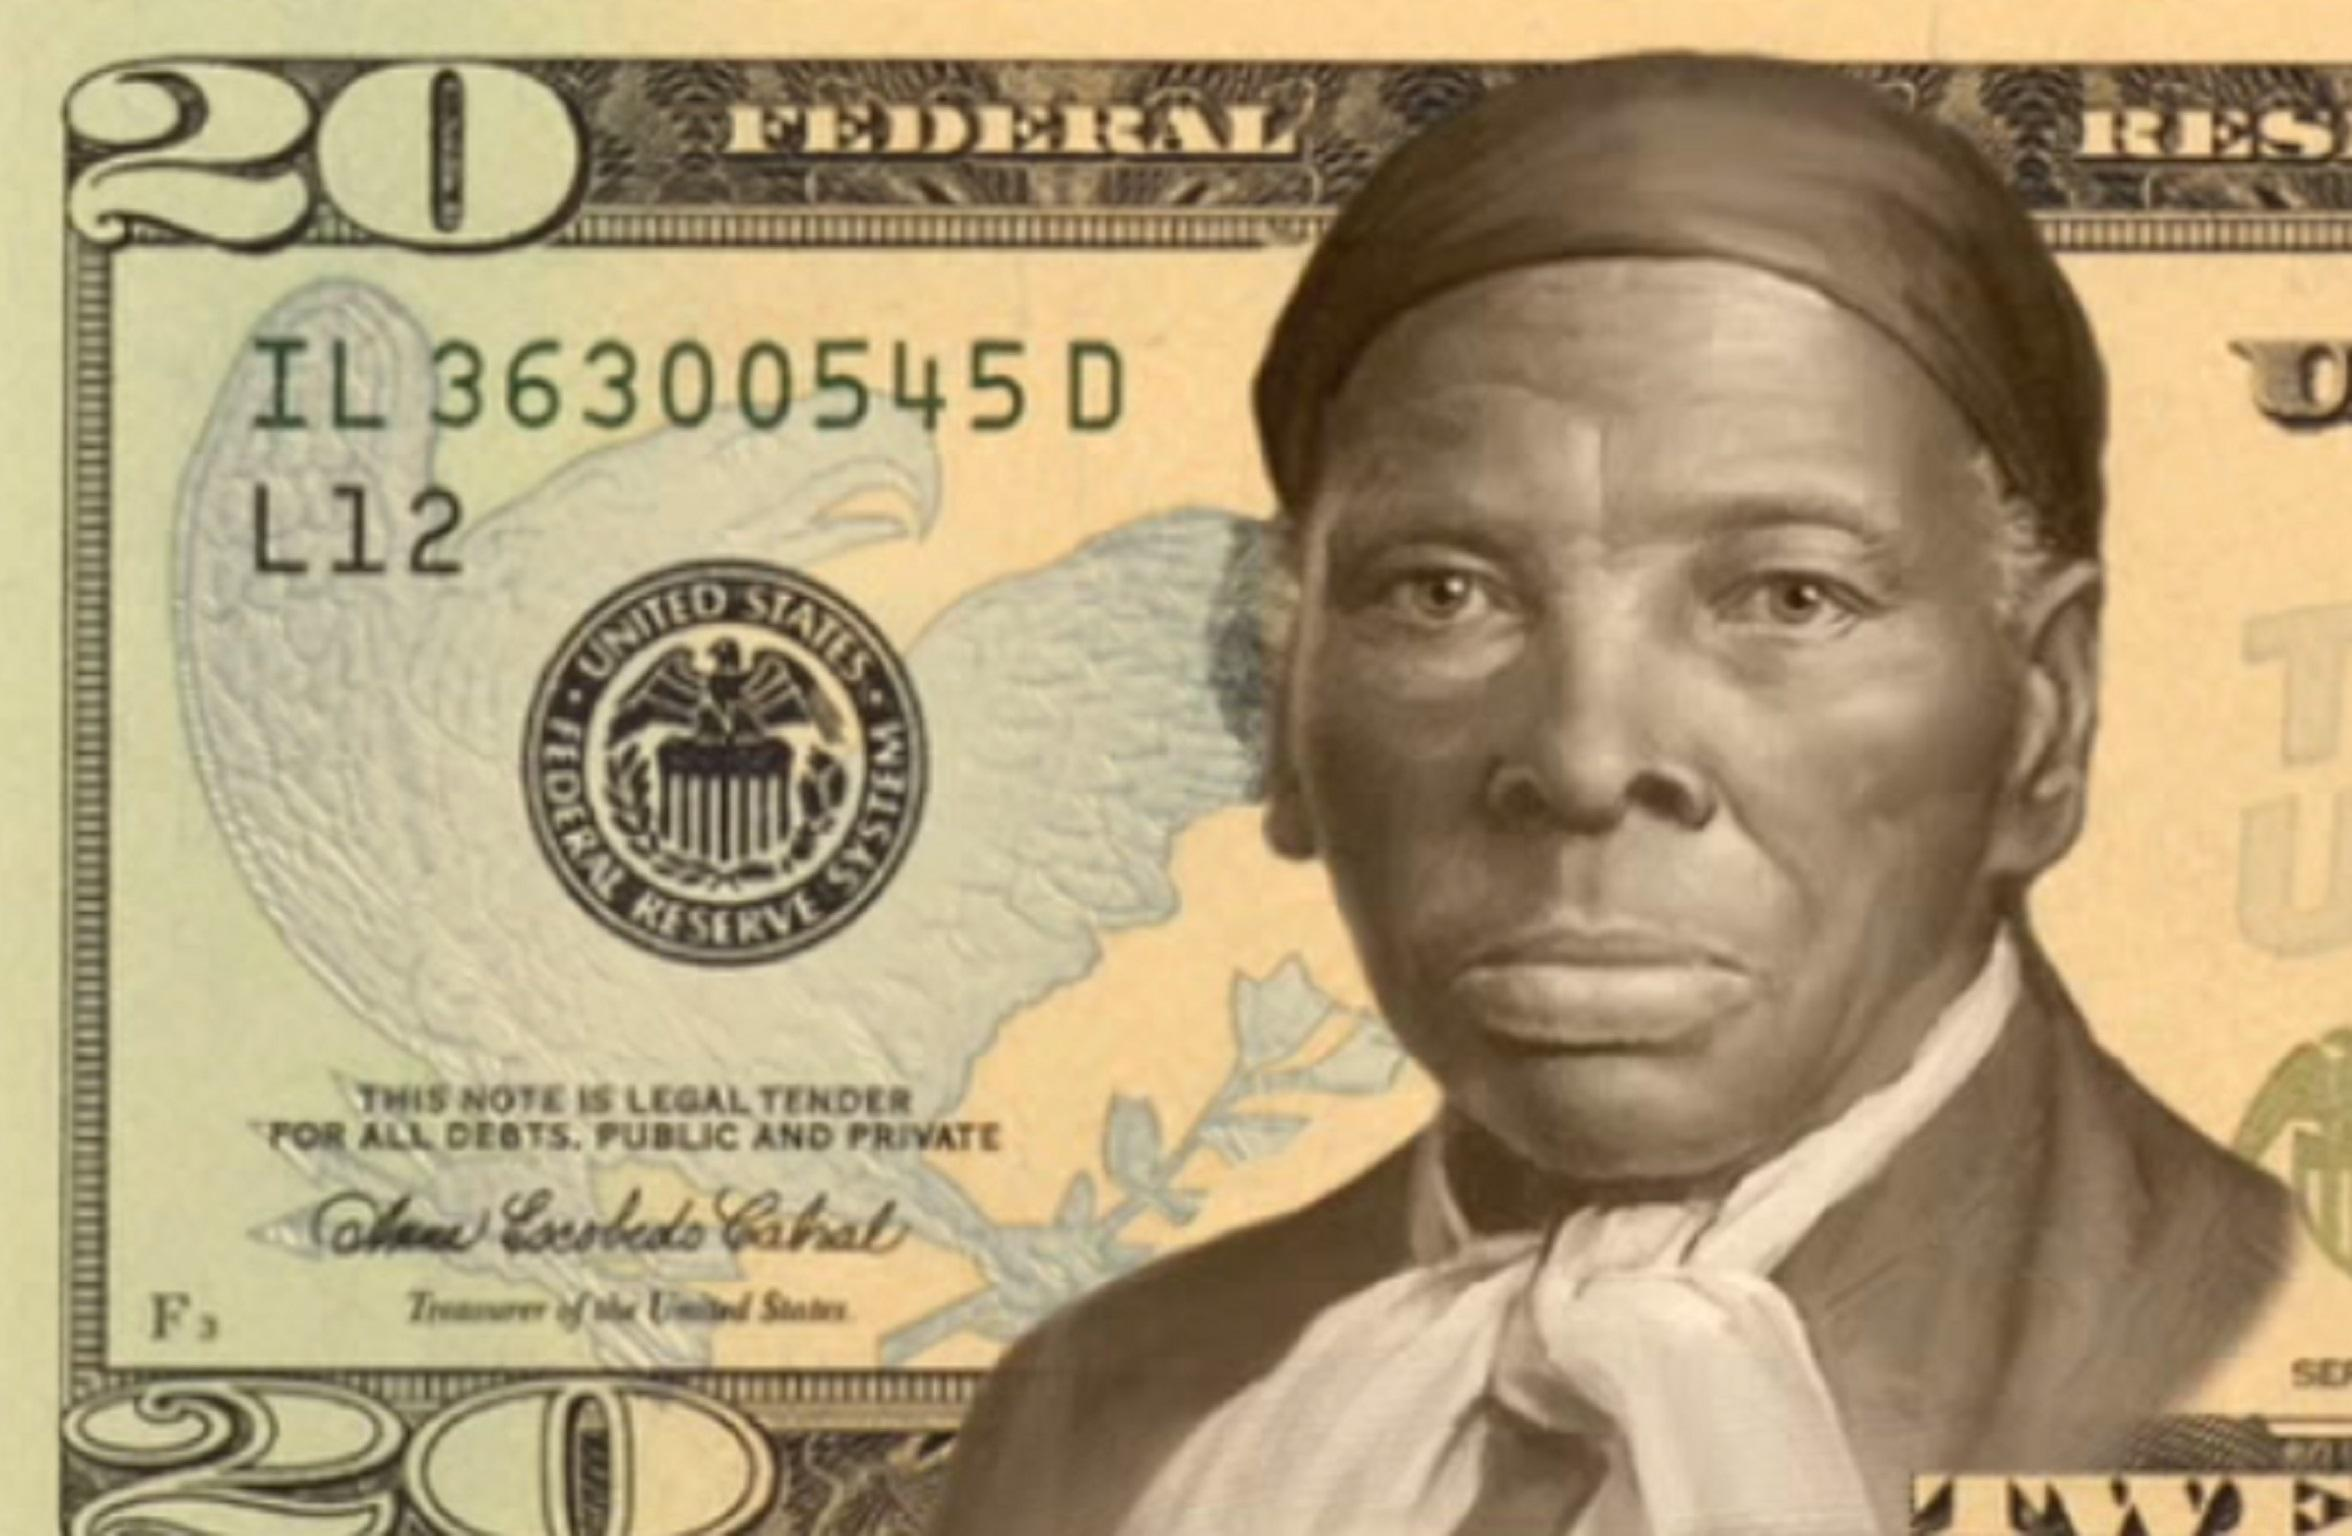 https://static.independent.co.uk/s3fs-public/thumbnails/image/2015/04/10/17/Harriet-Tubman-bill2.jpg